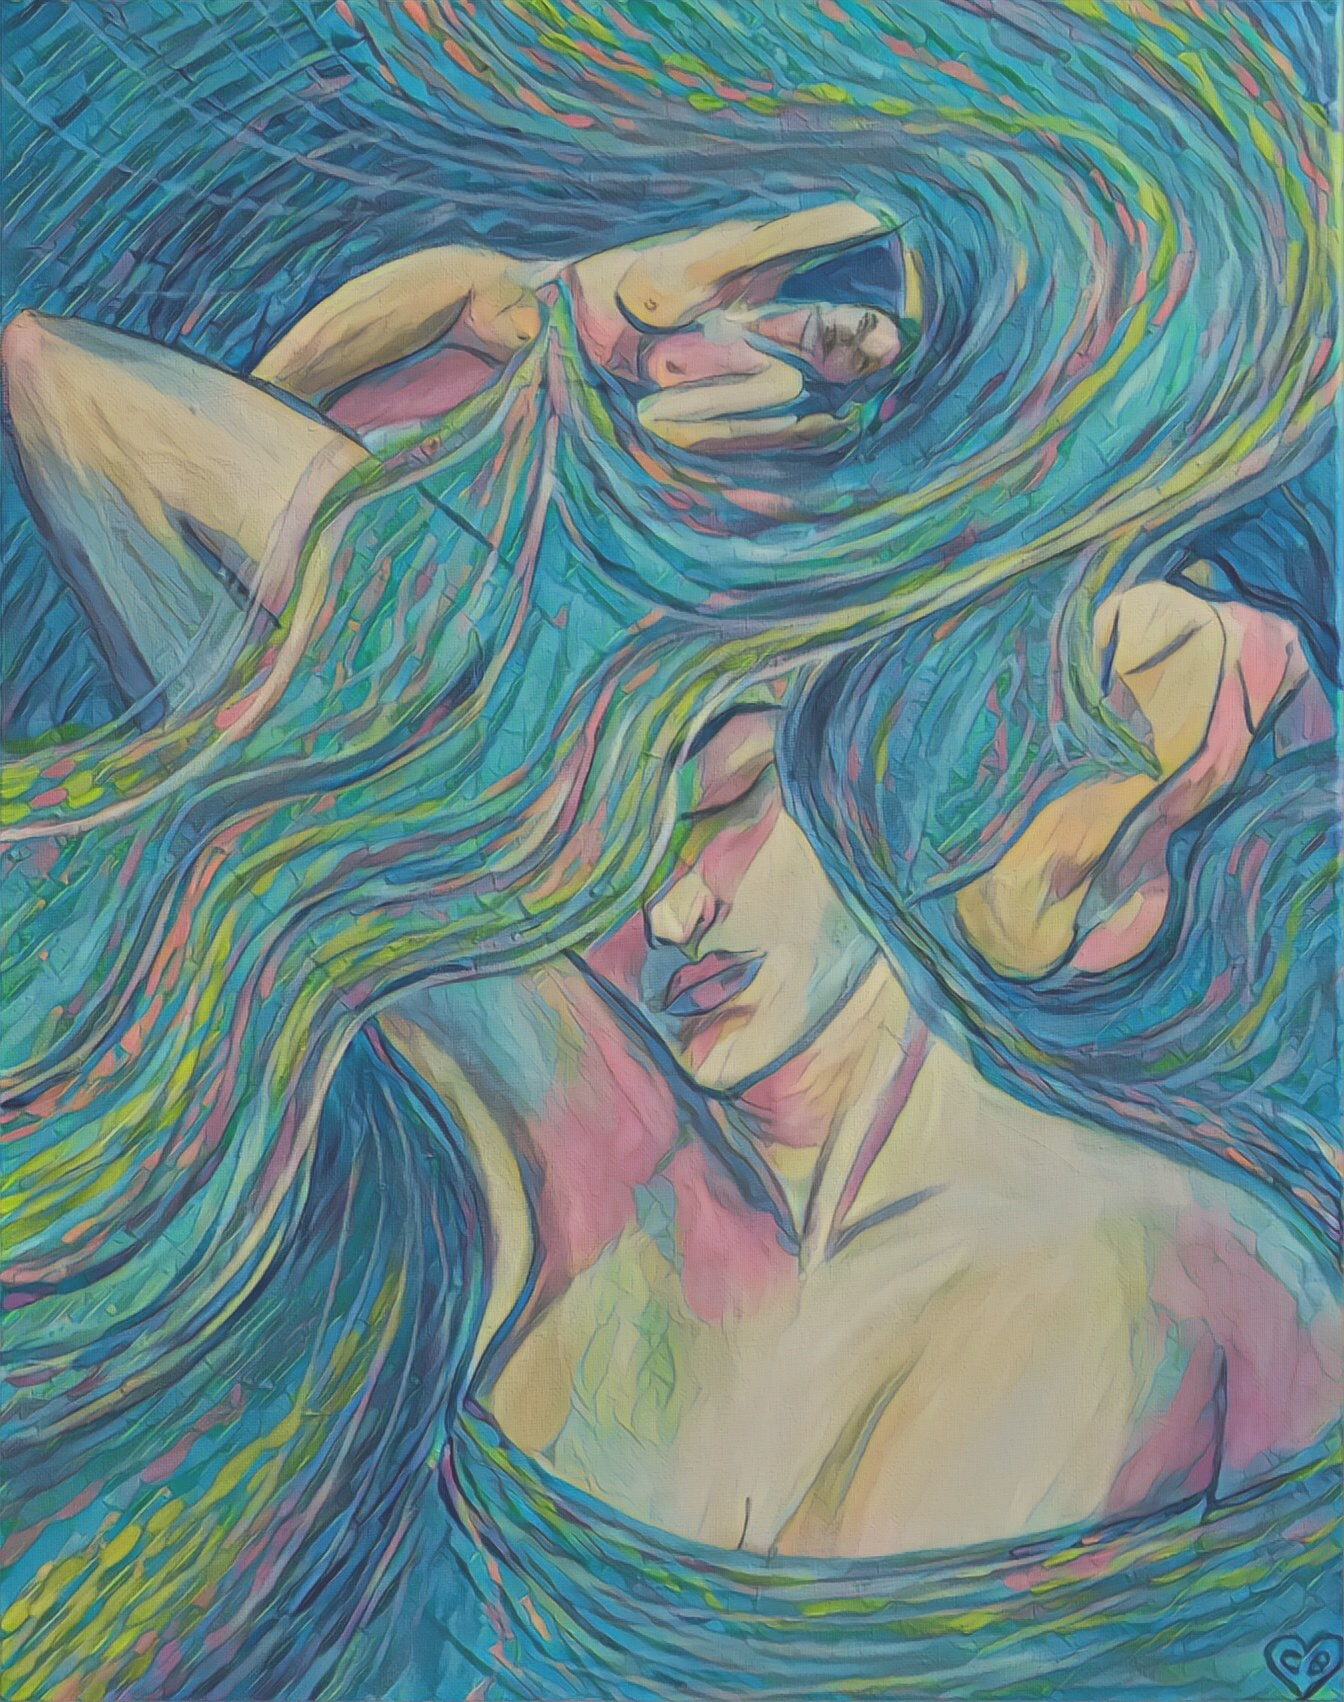 An image of pastels covering part of the woman's face.